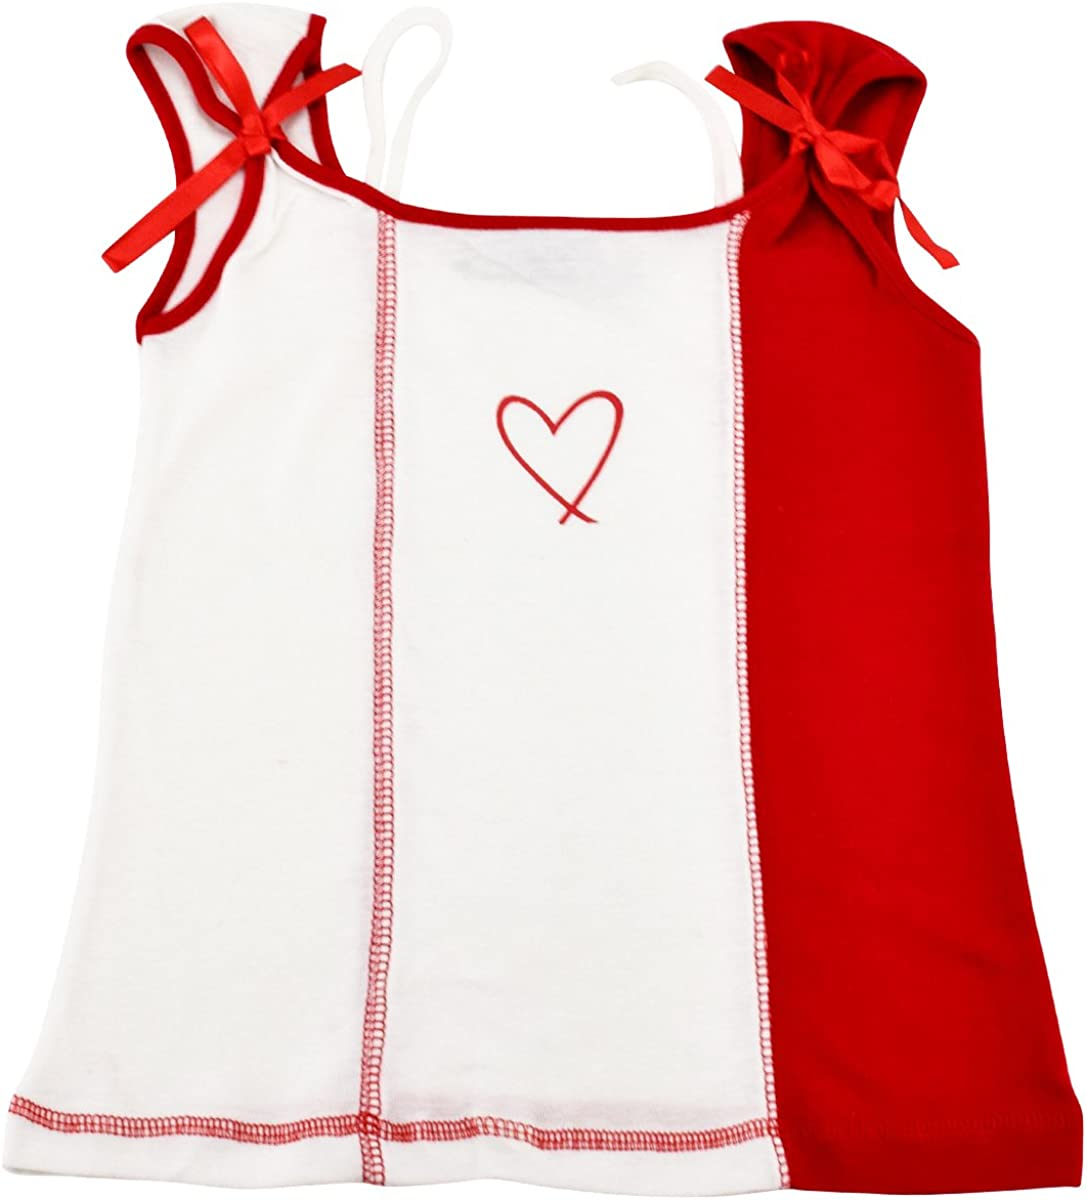 Suite 102 Girls Egyptian Cotton Tank Top